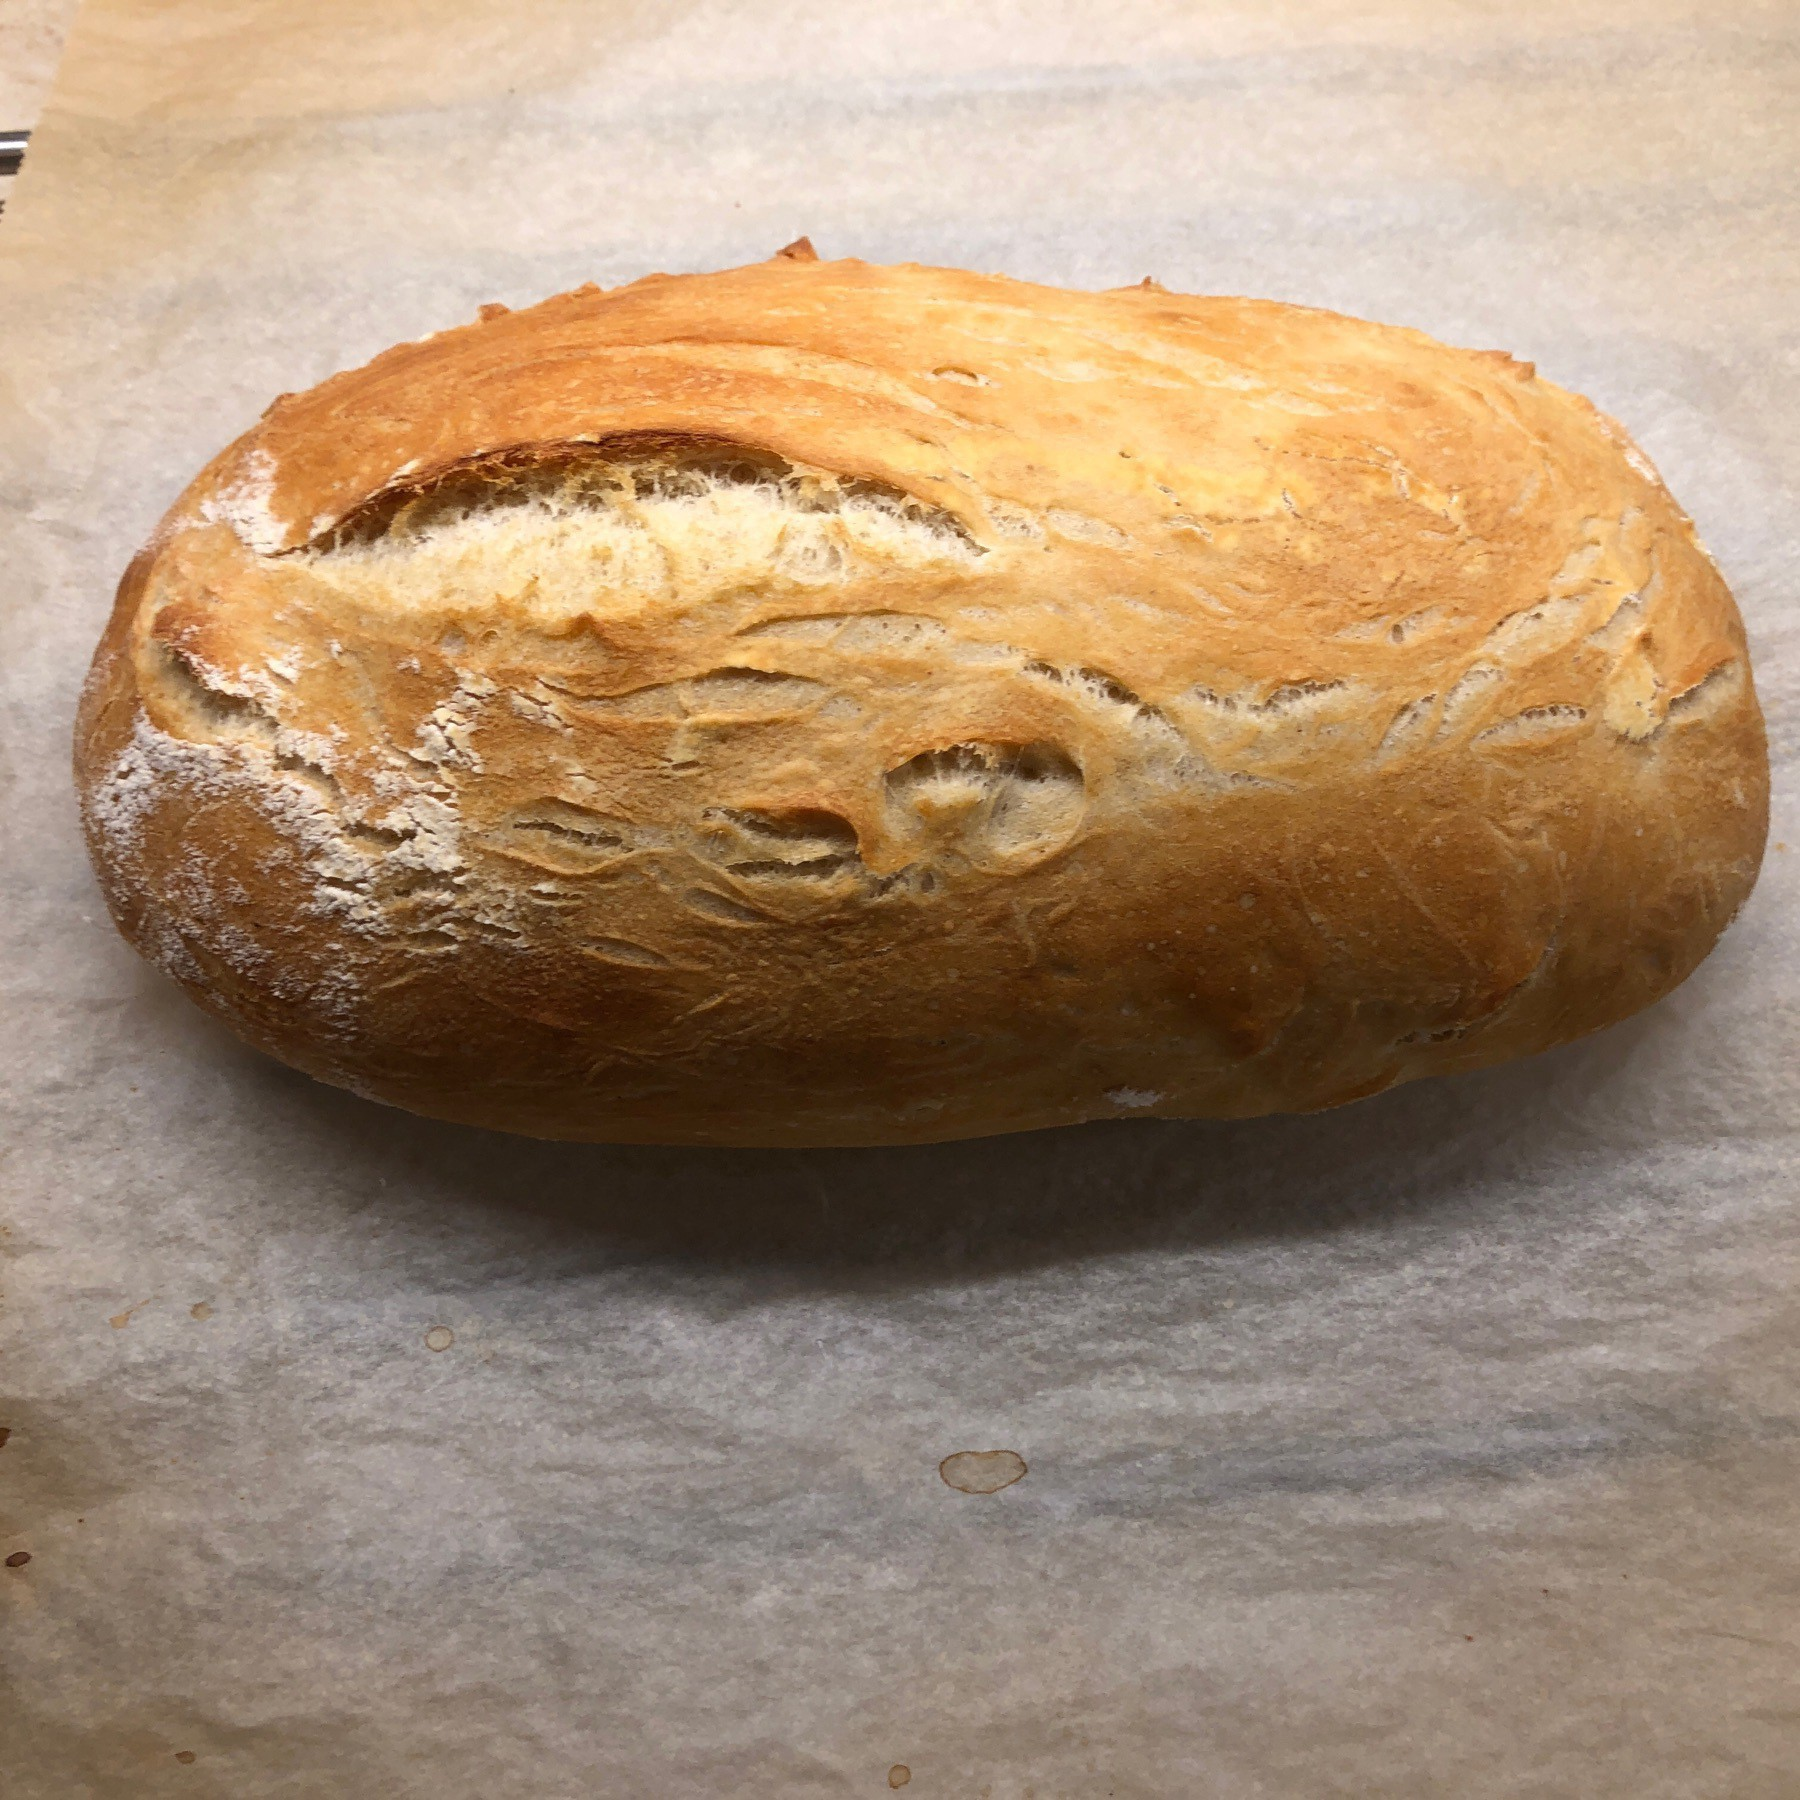 Loaf of rustic bread cooling on parchment paper.